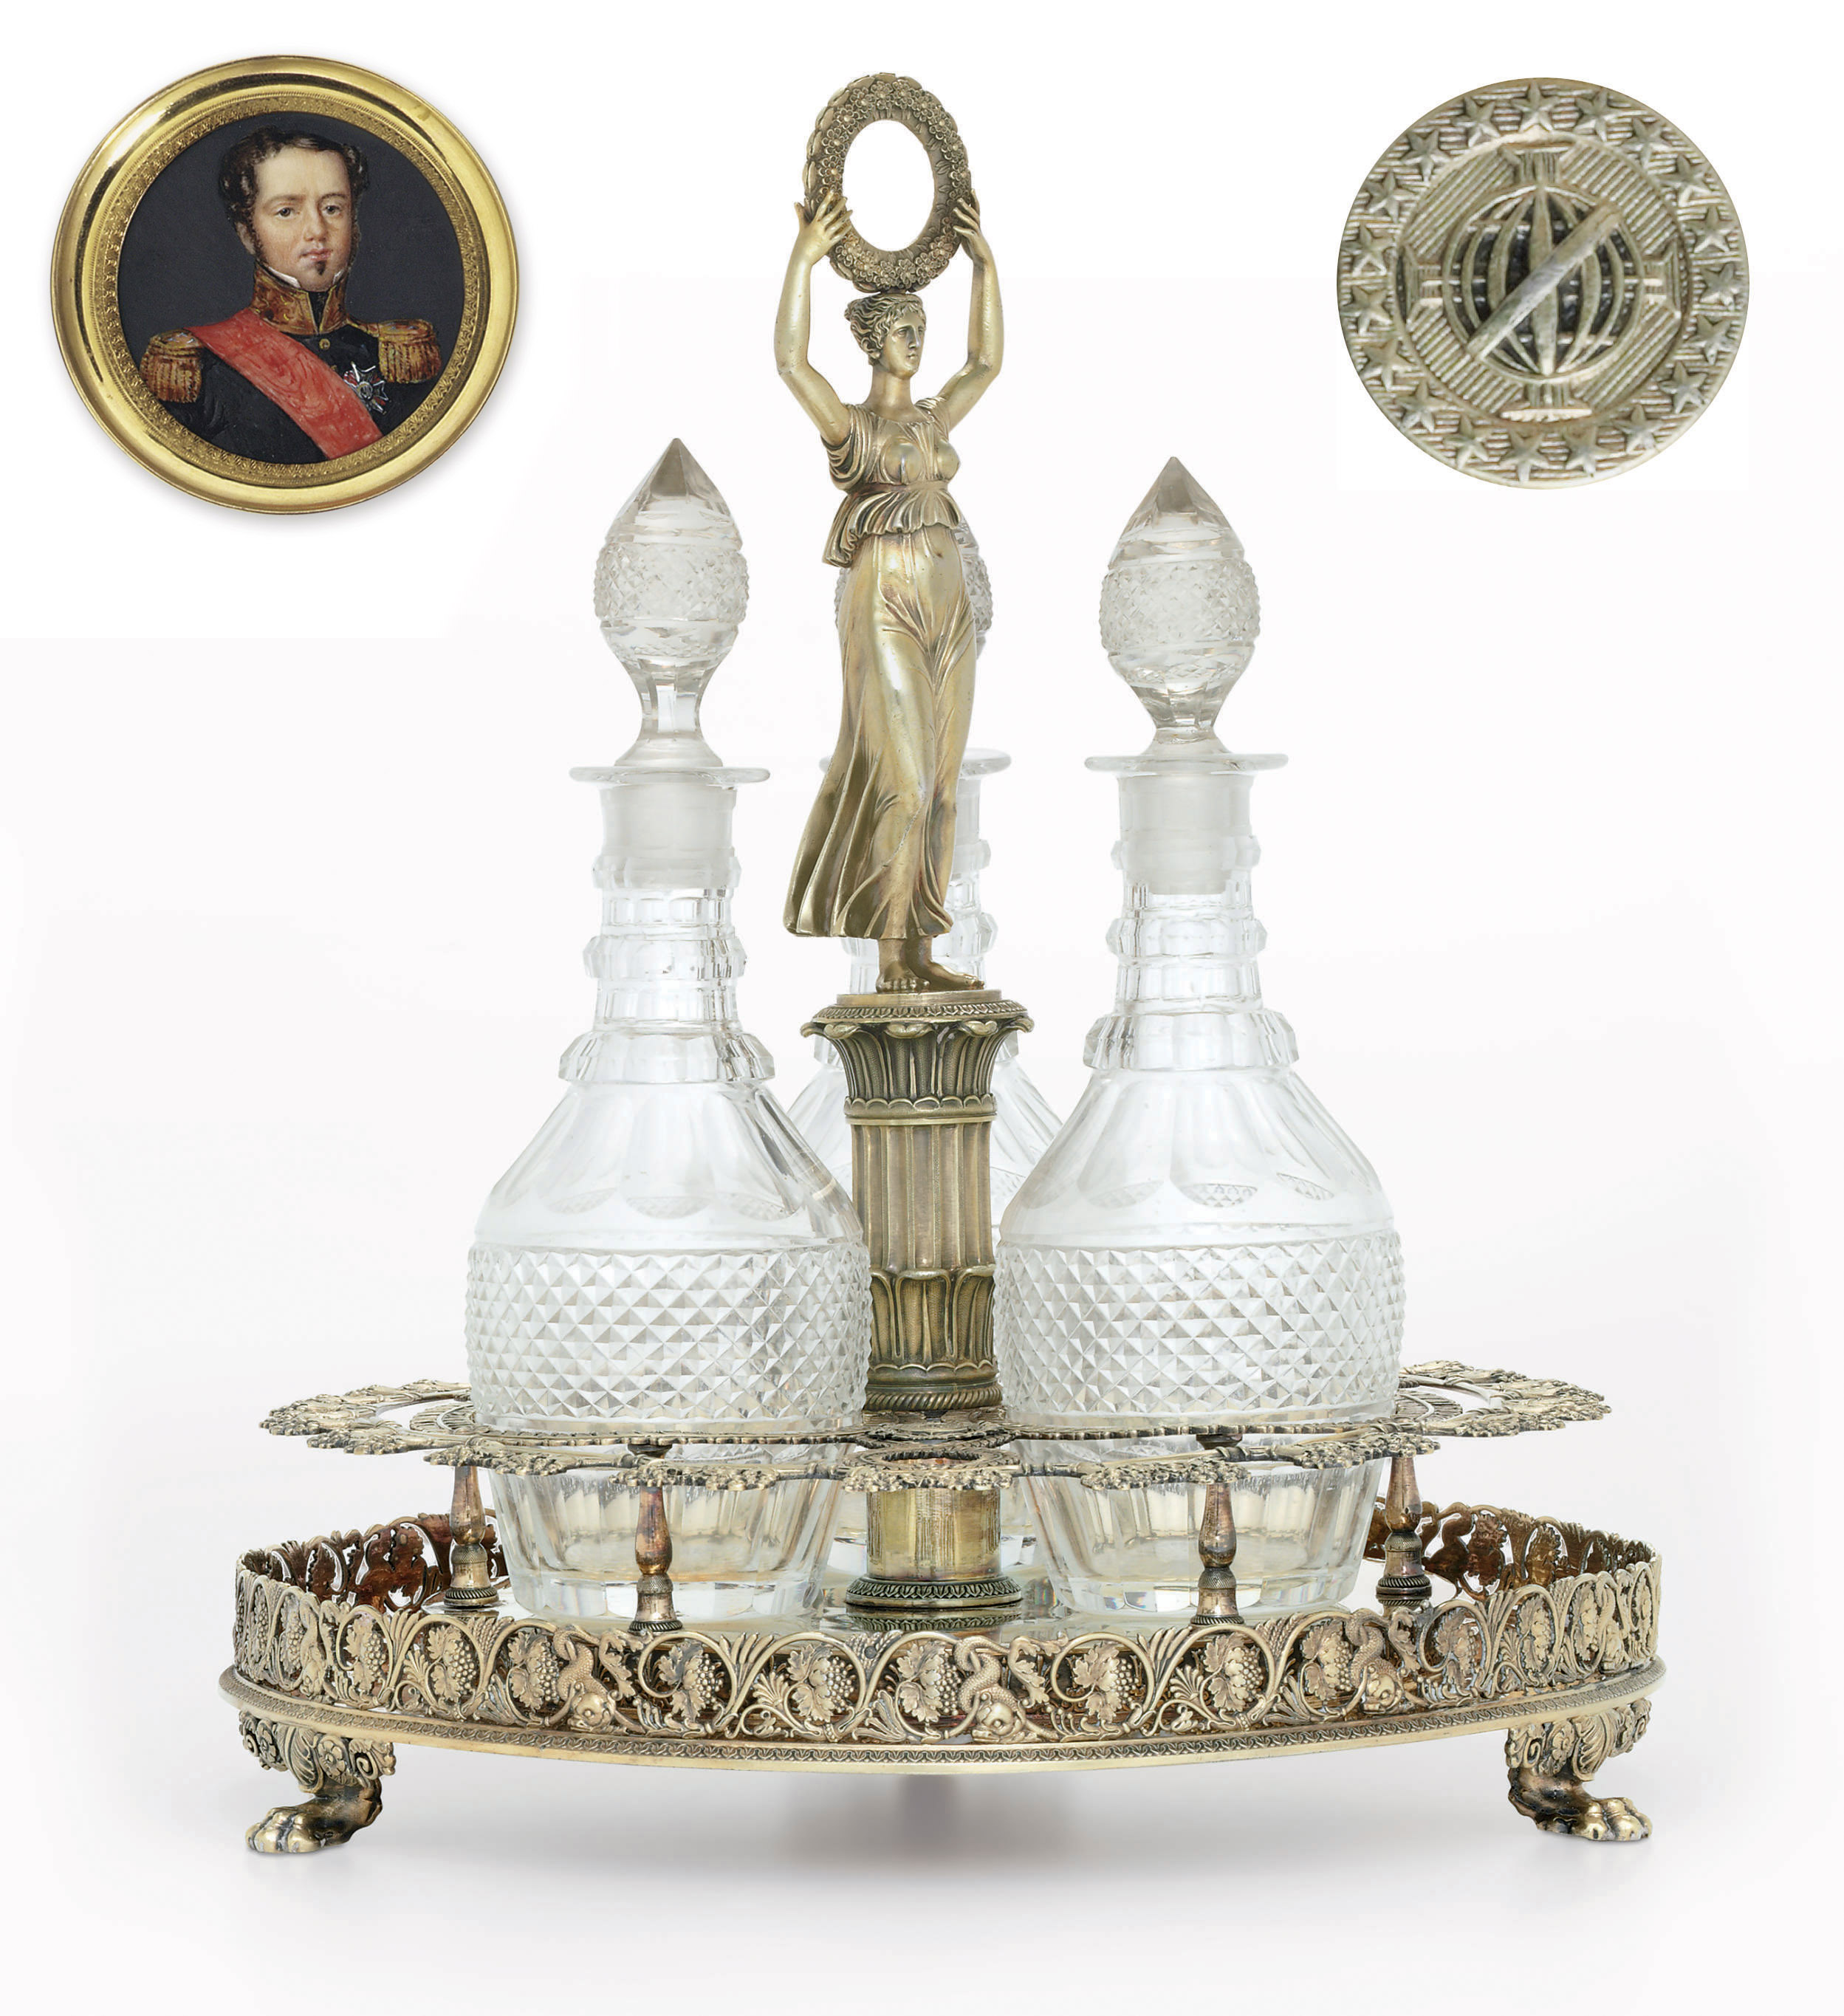 A FRENCH SILVER-GILT DECANTER STAND FROM THE BRAZILIAN IMPERIAL SERVICE